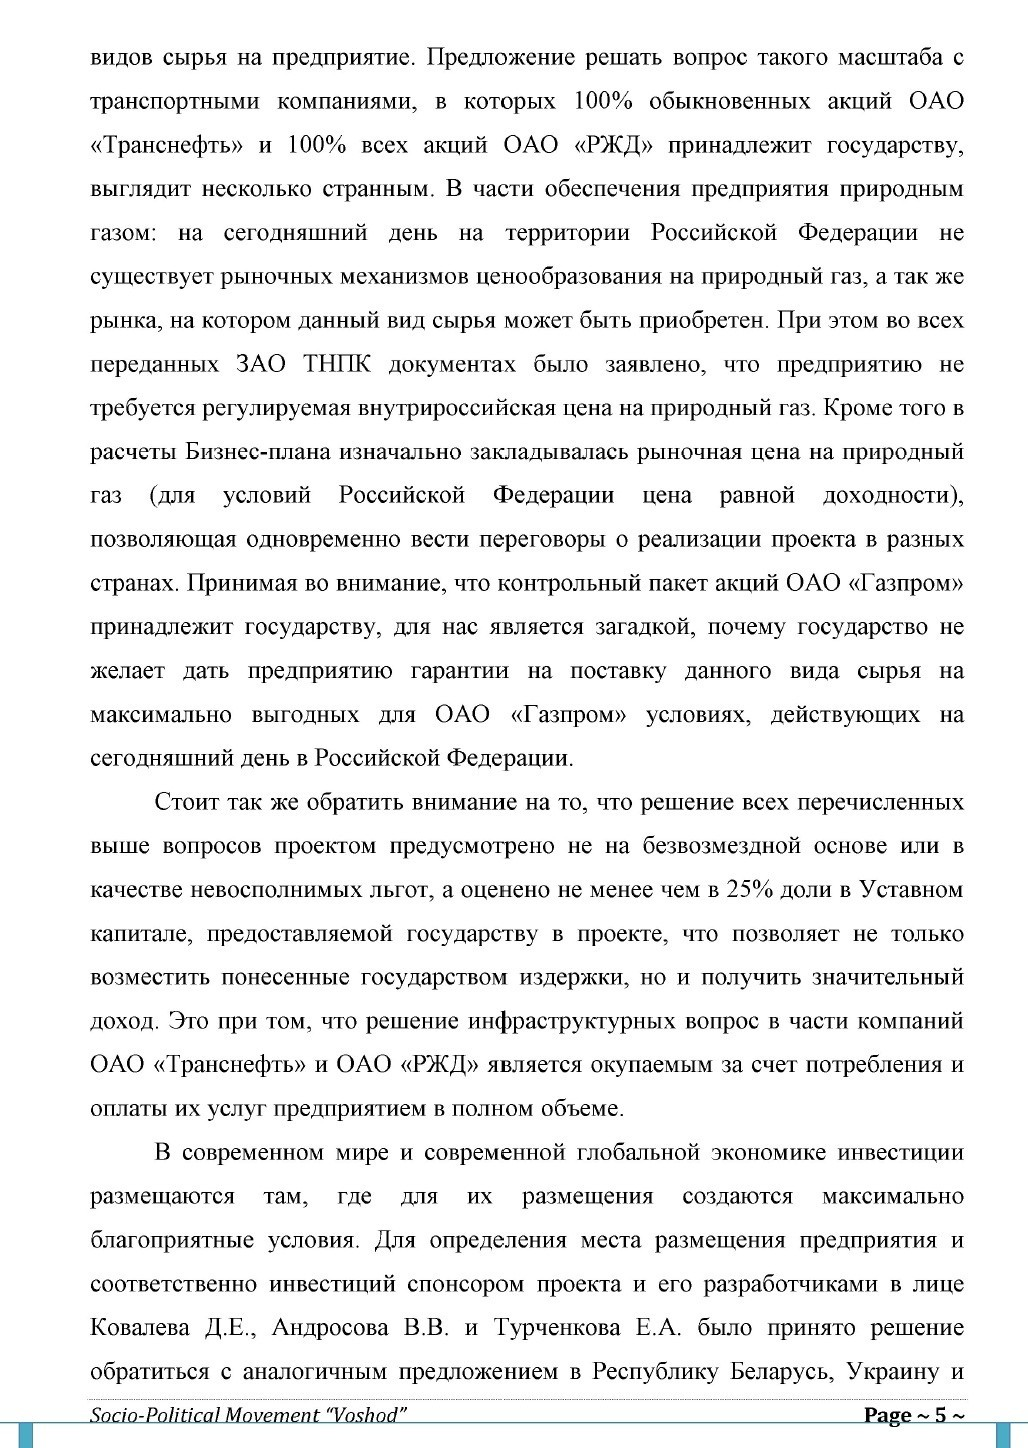 Letter to President of Russia N37-5